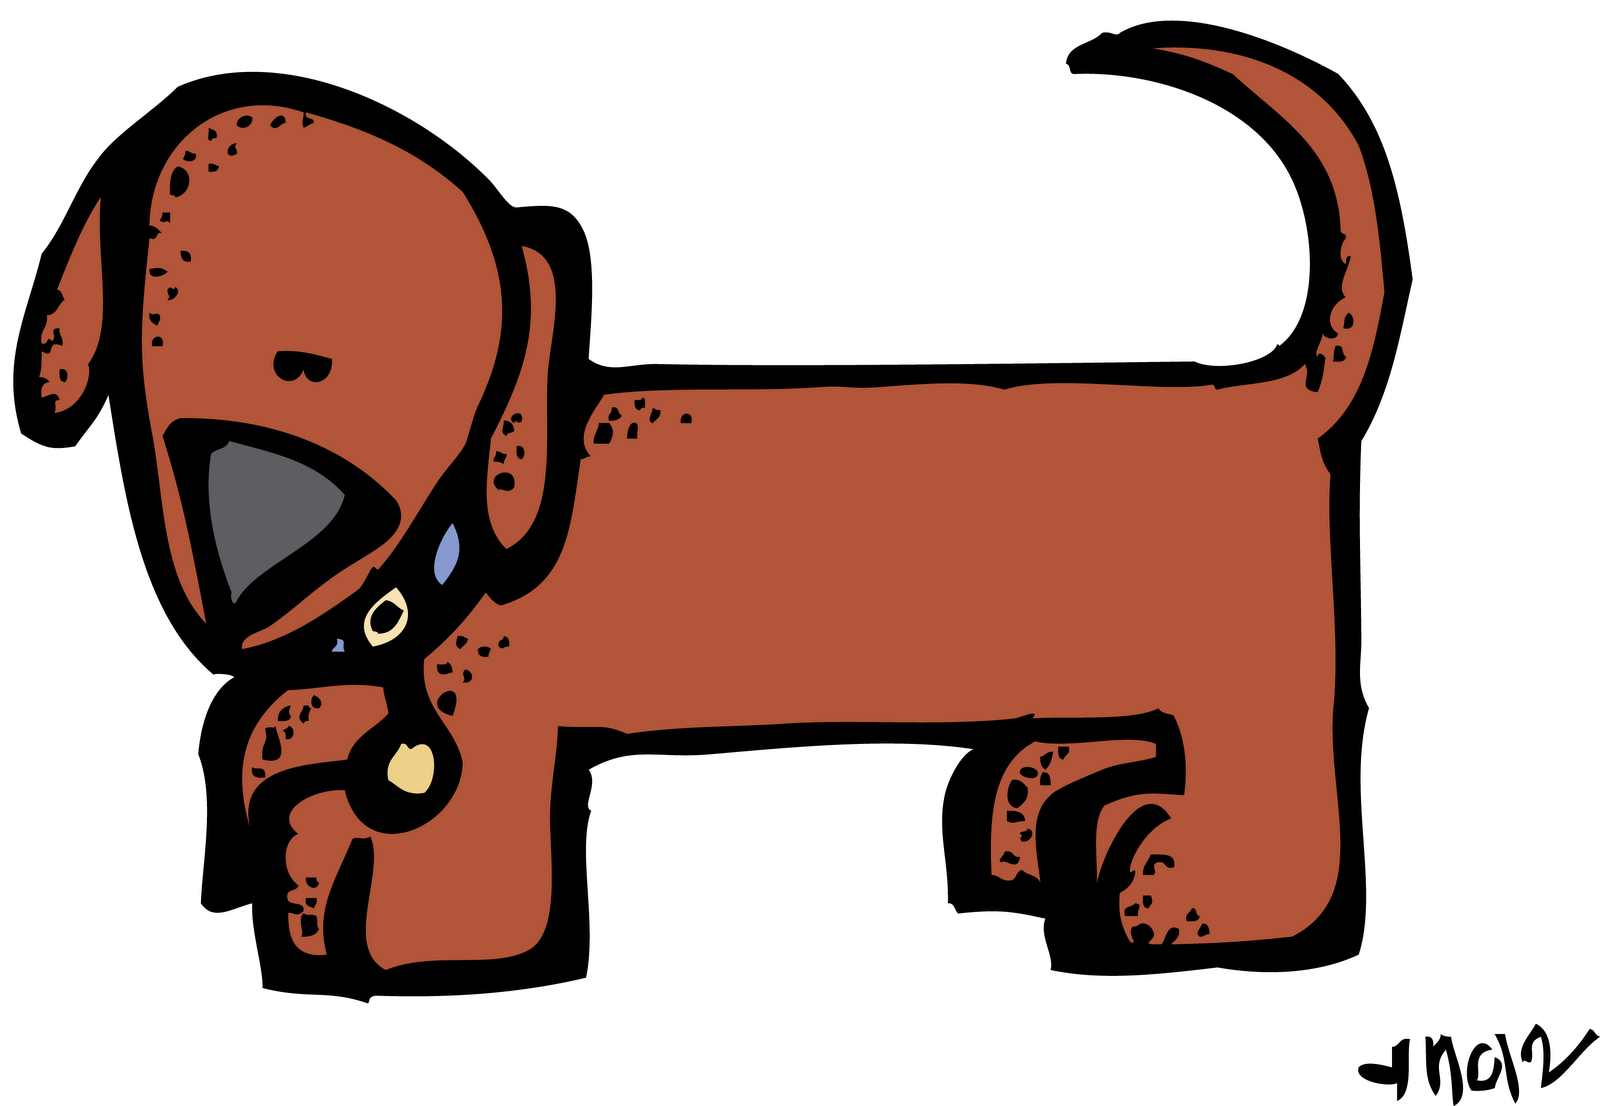 Dog in snow clipart jpg free library MelonHeadz: A request from Jennifer jpg free library